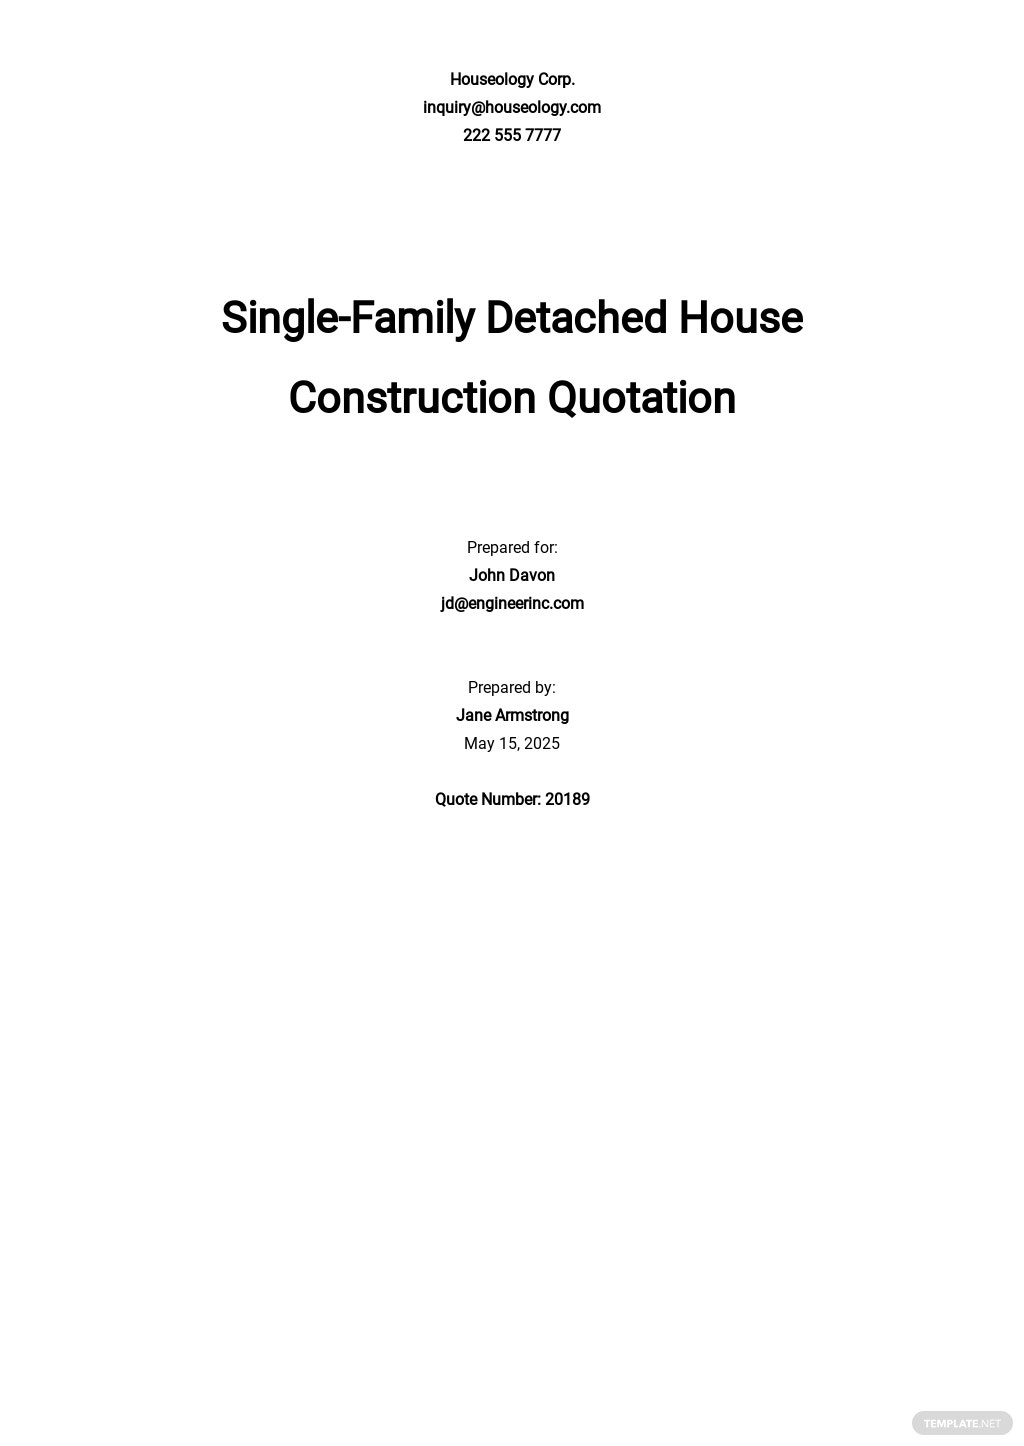 House Construction Quotation Template